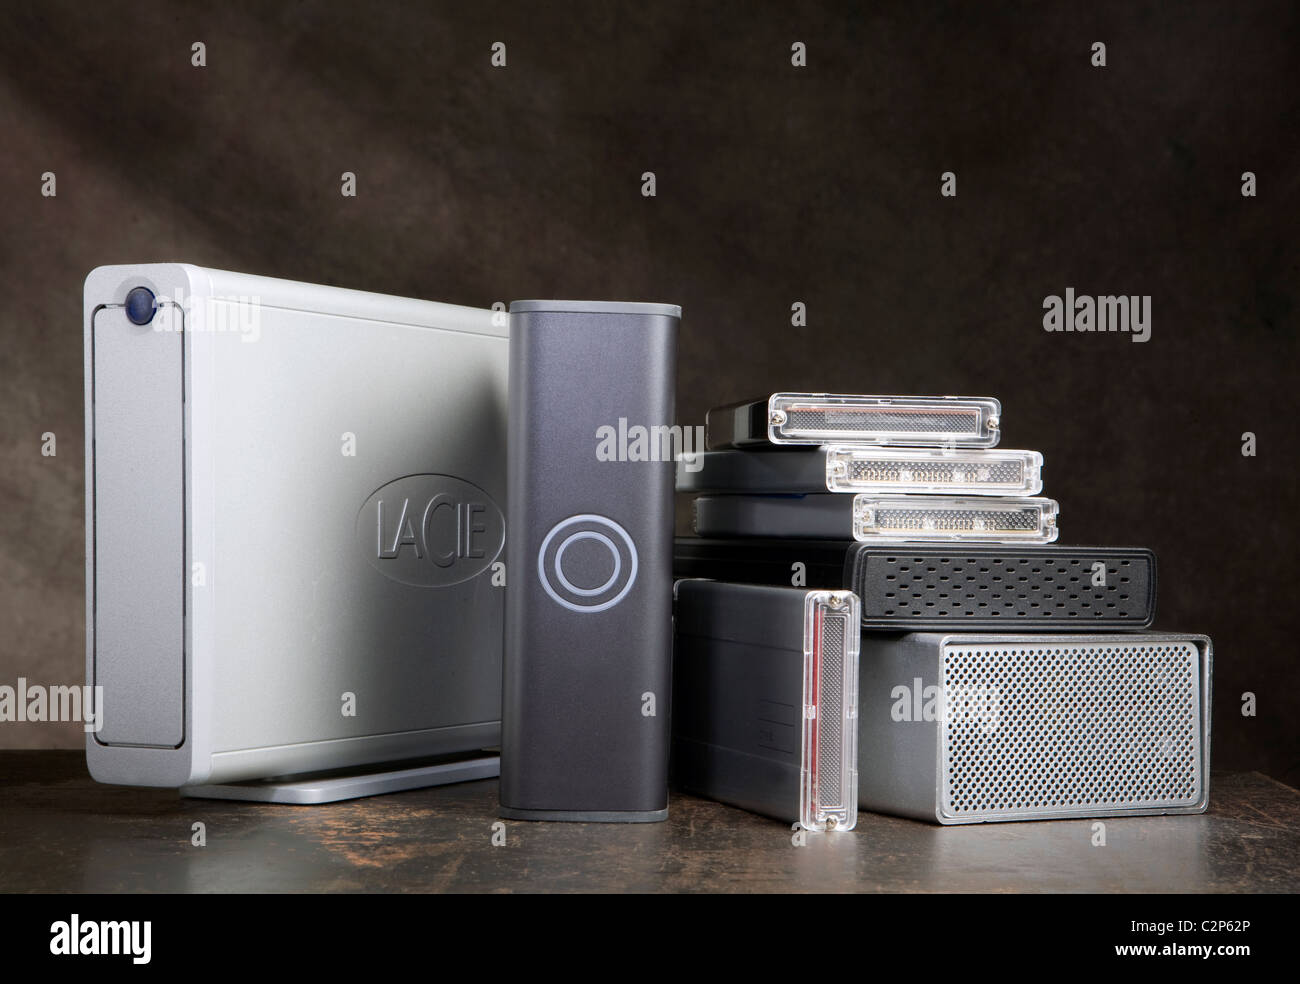 collection of hard drives - Stock Image